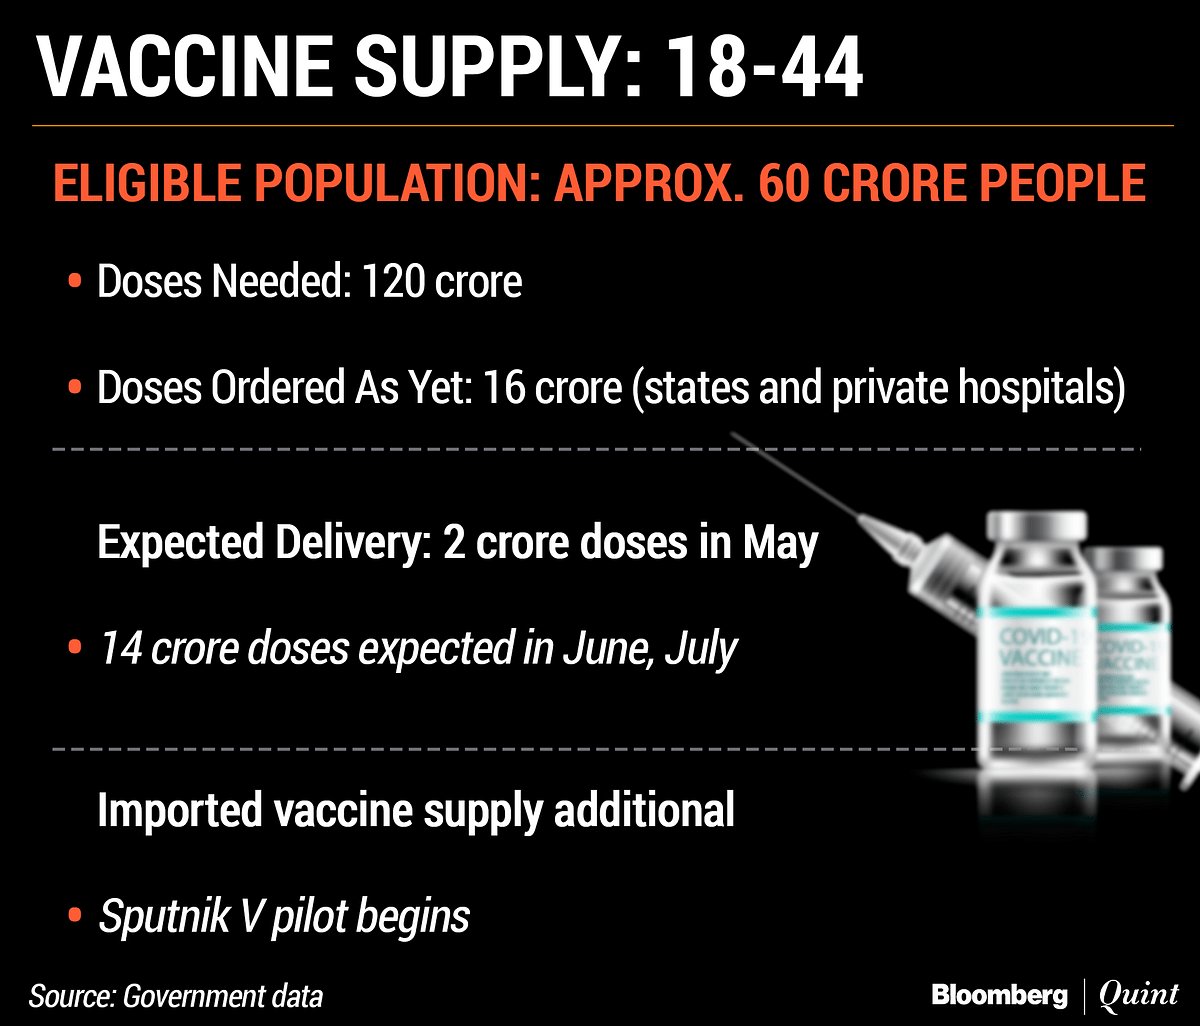 Vaccination Timeline For 18 To 44-Year-Olds